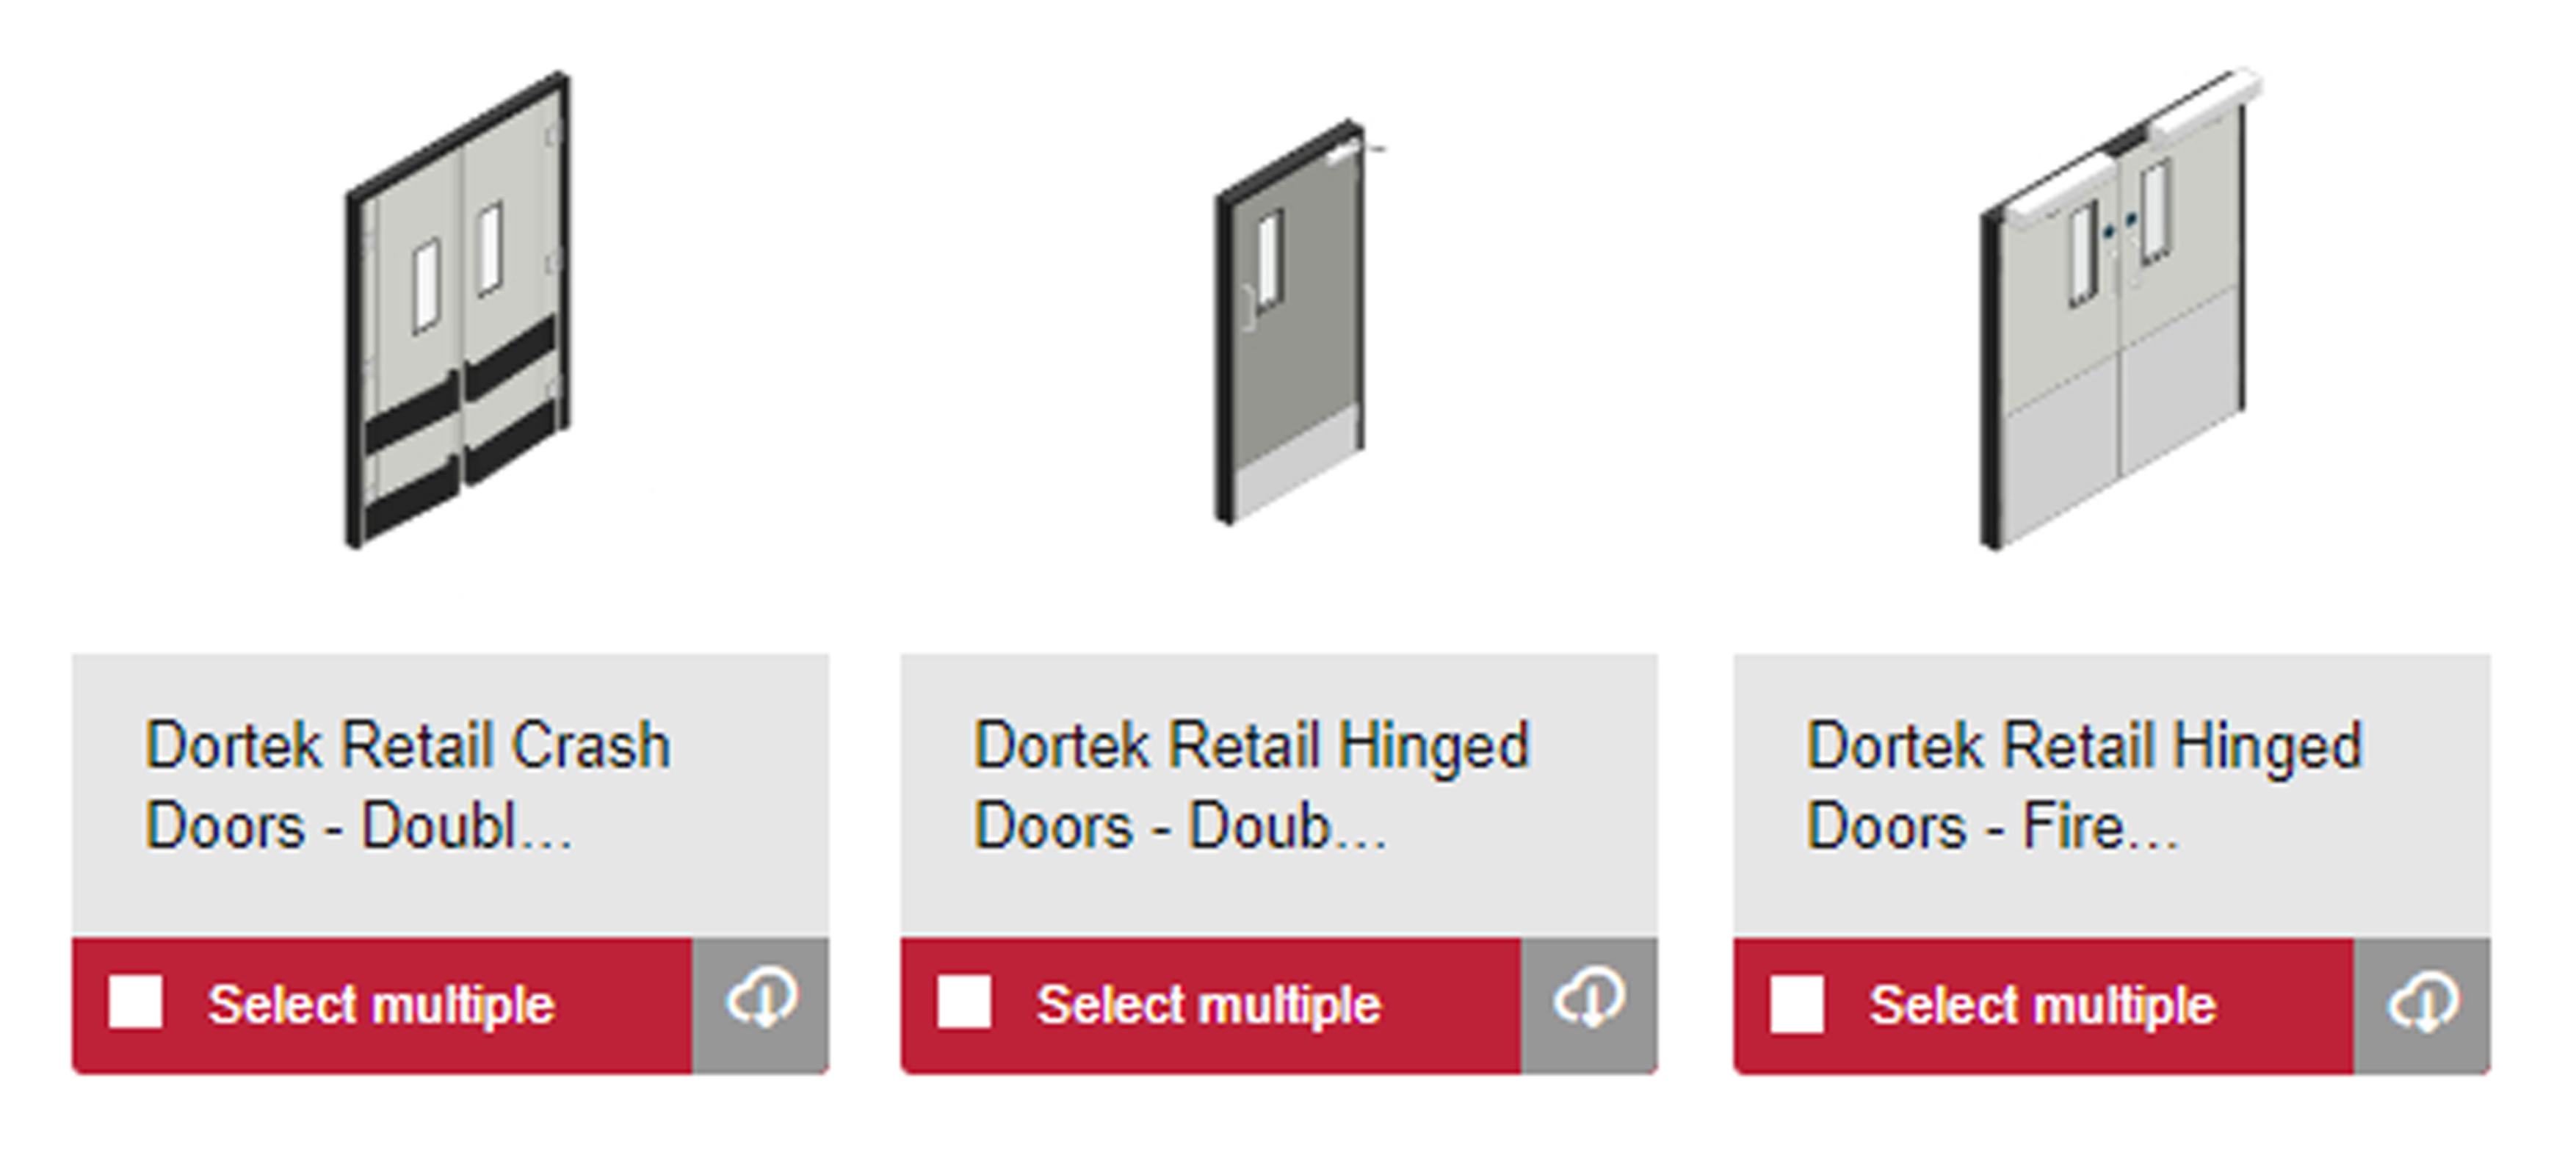 Dortek adds Retail Doors to its BIM objects